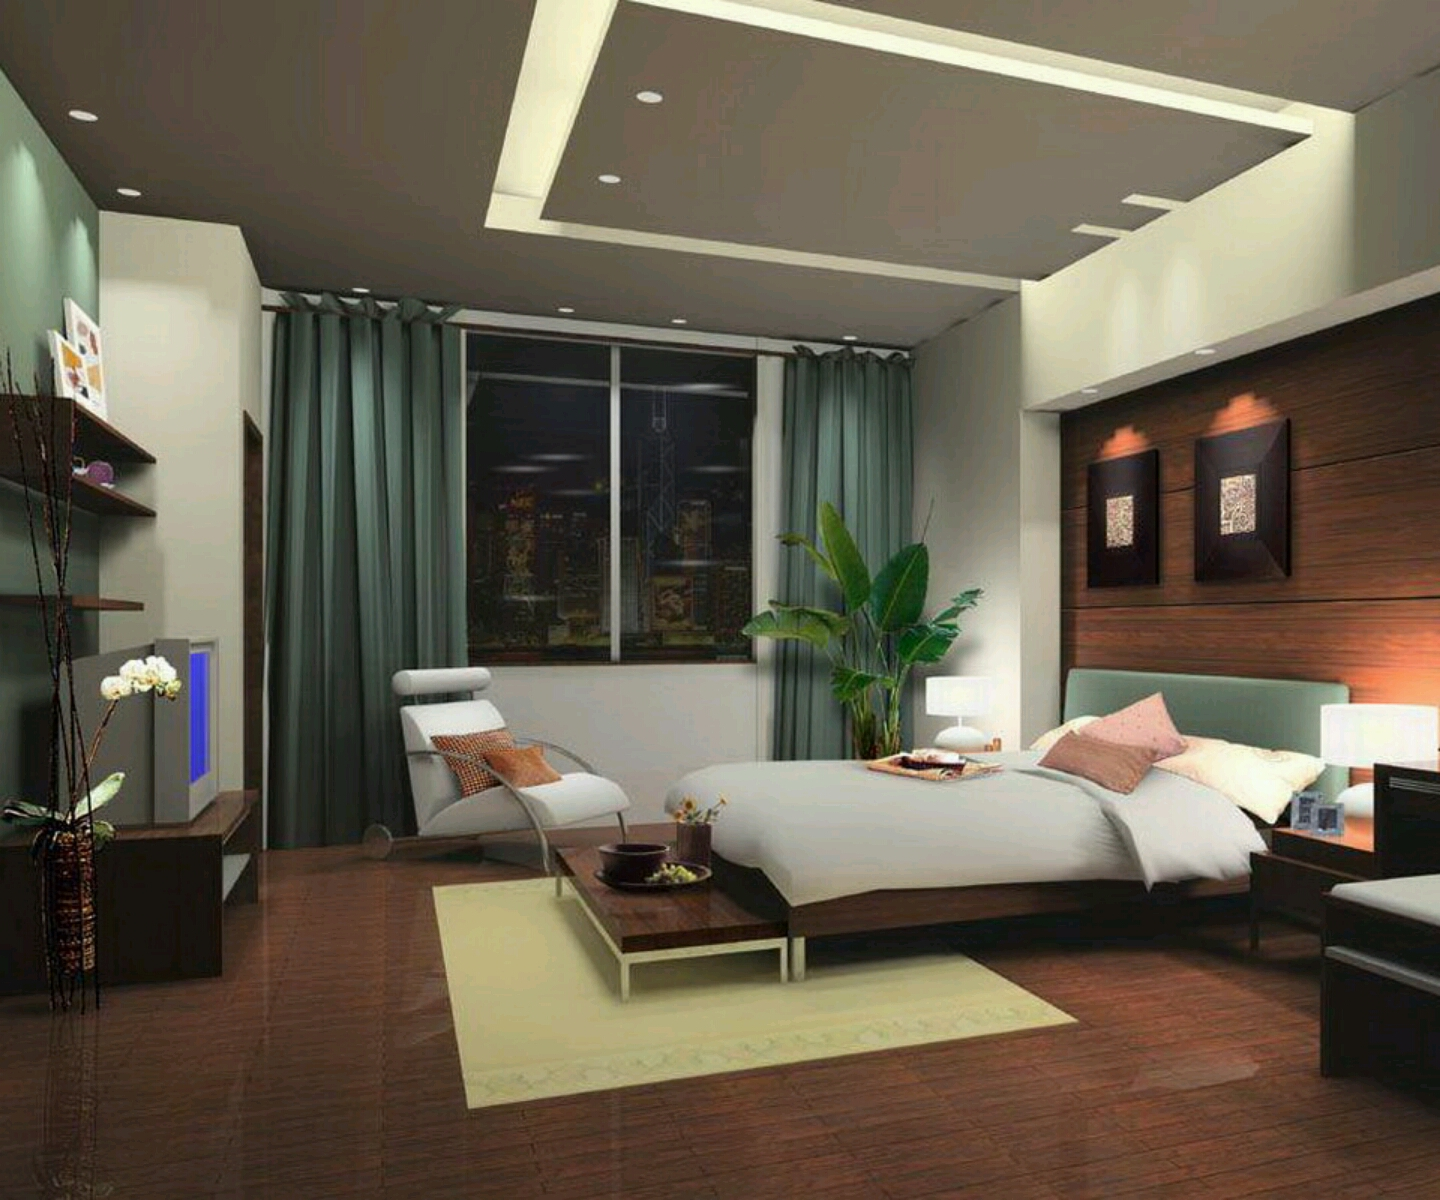 New home designs latest modern bedrooms designs best ideas for Bedroom picture ideas